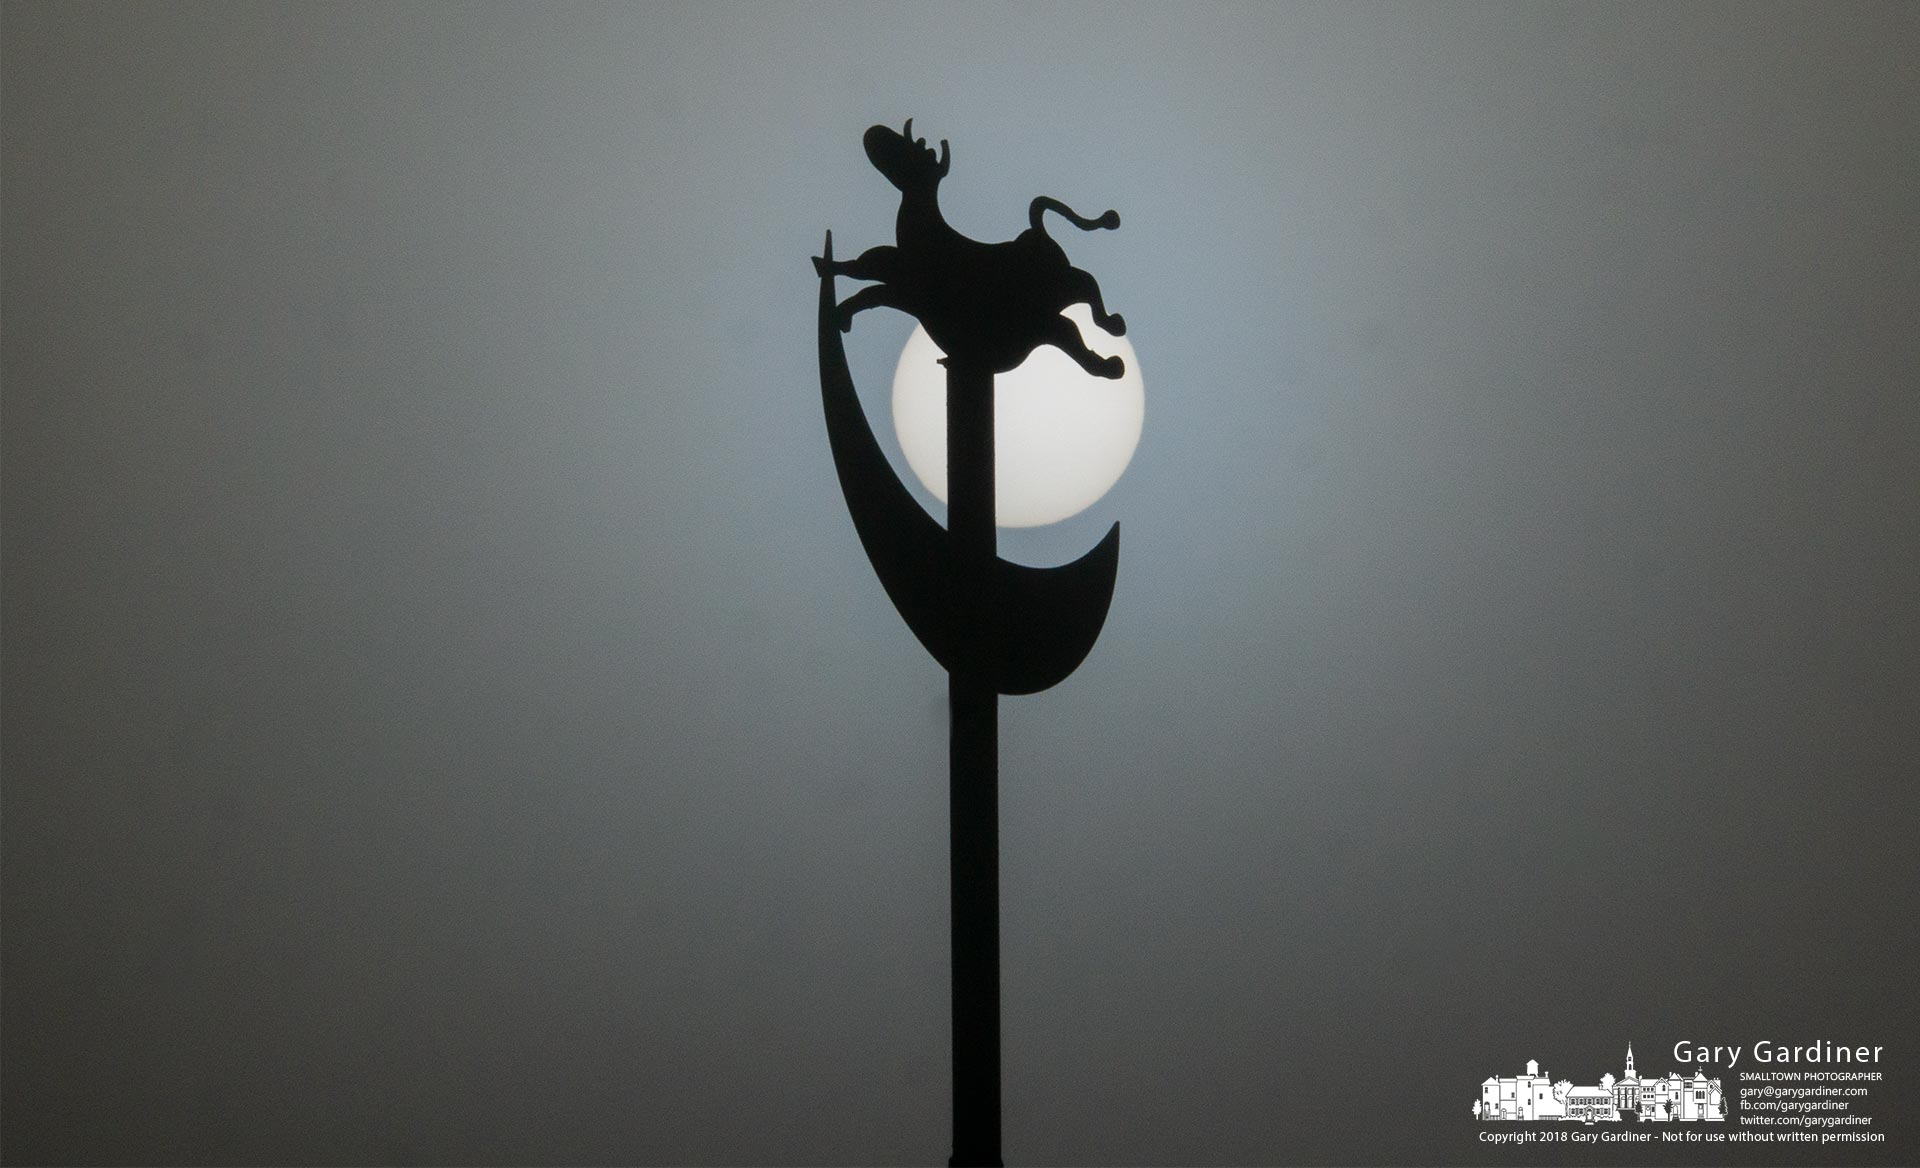 The fog-shrouded sun silhouettes Children'sHospital's cow jumpingover the moon weathervane on a crisp morning after Christmas. My FinalPhoto for Dec. 26, 2018.